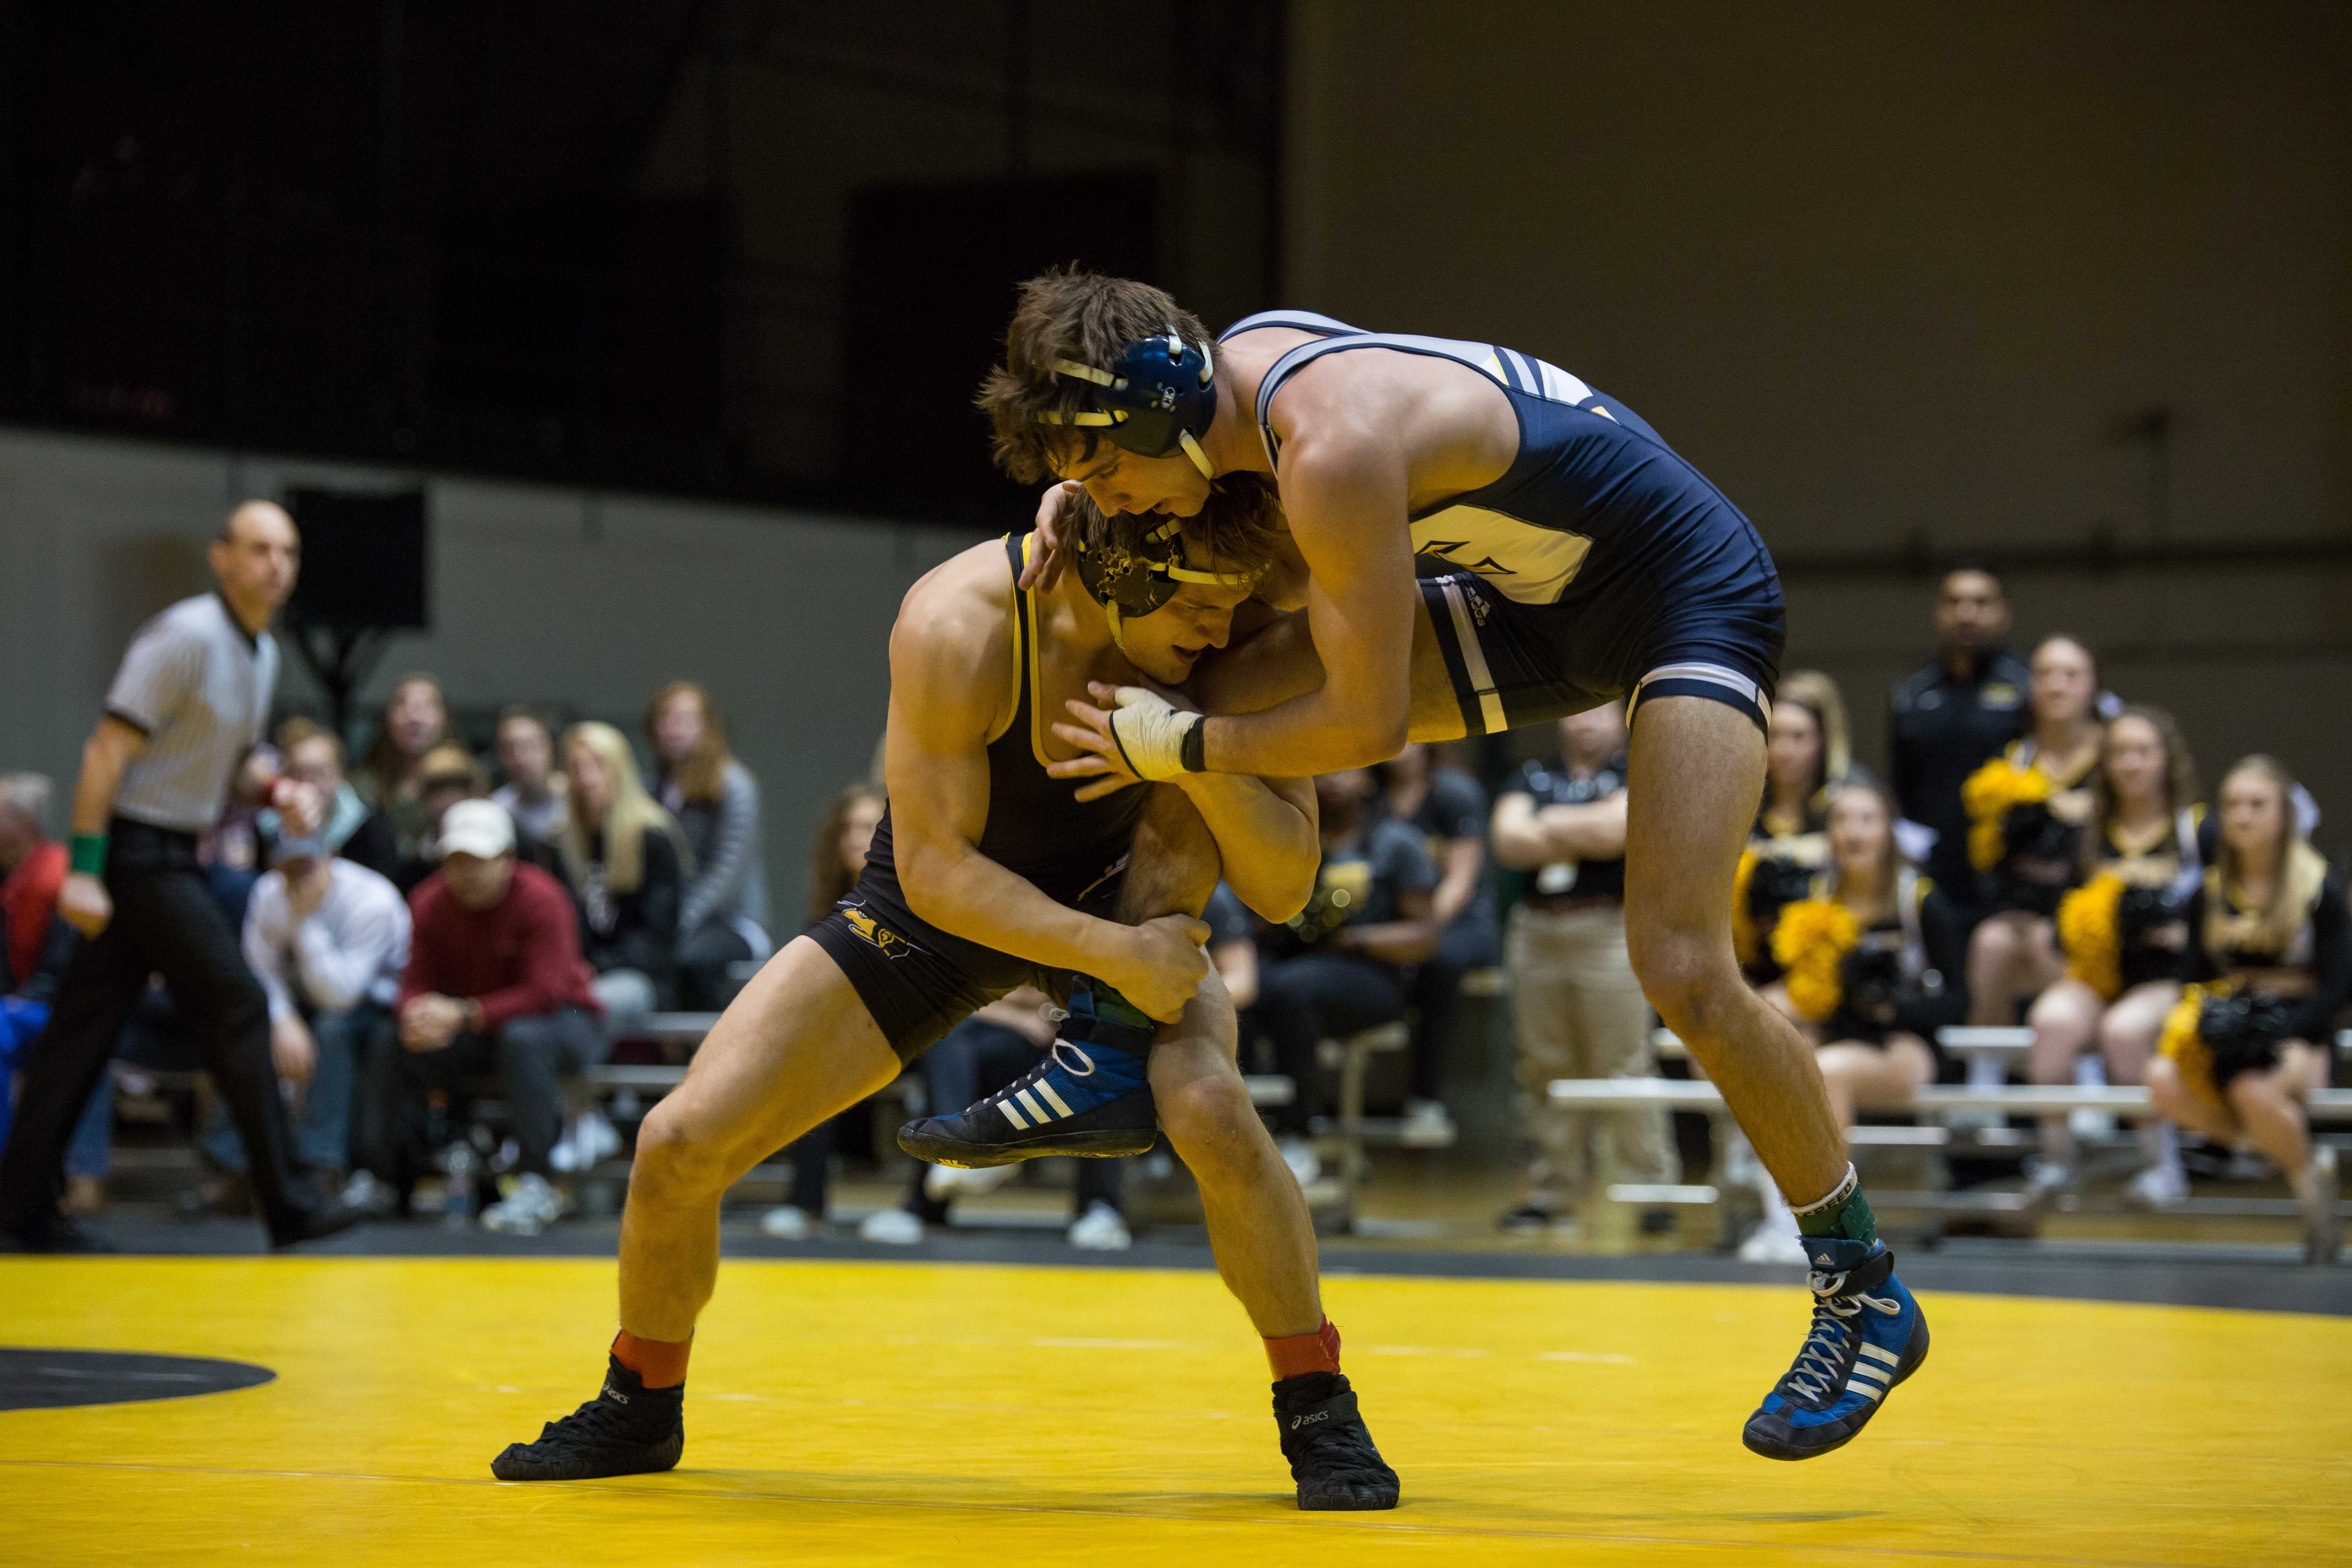 The Mountaineer's Matt Zivistoski attempts to take down Chattanooga's Roman Boylen. Following a 16-16 tie, the Mountaineers stayed undefeated in the SoCon with a 55-54 tiebreaker over the Mocs.